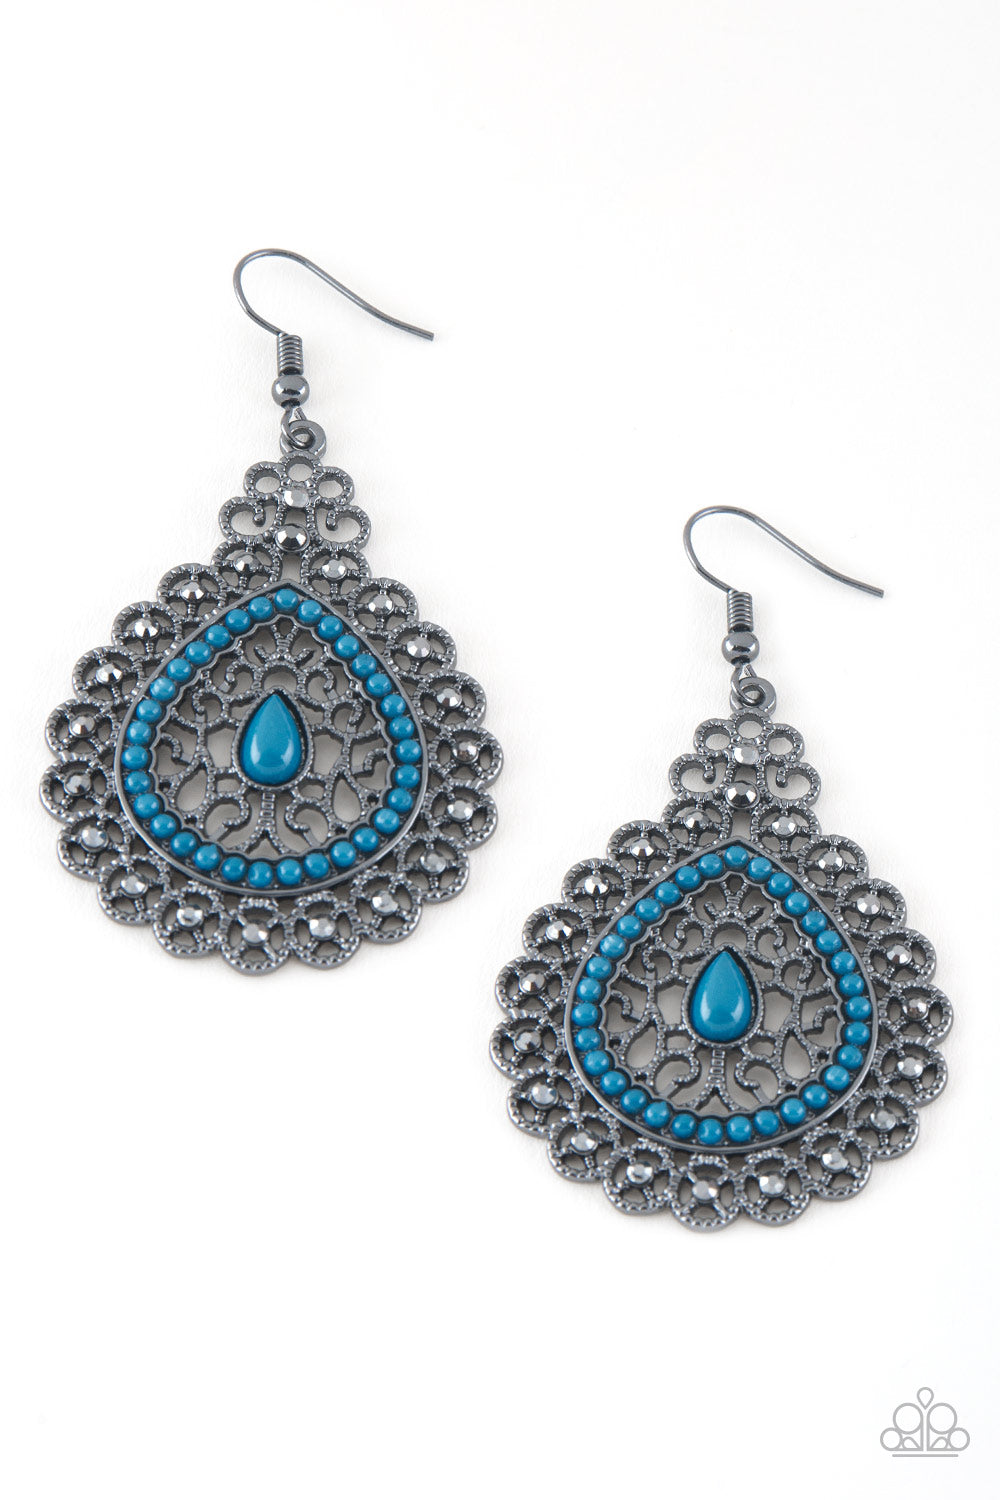 five-dollar-jewelry-carnival-courtesan-blue-earrings-paparazzi-accessories